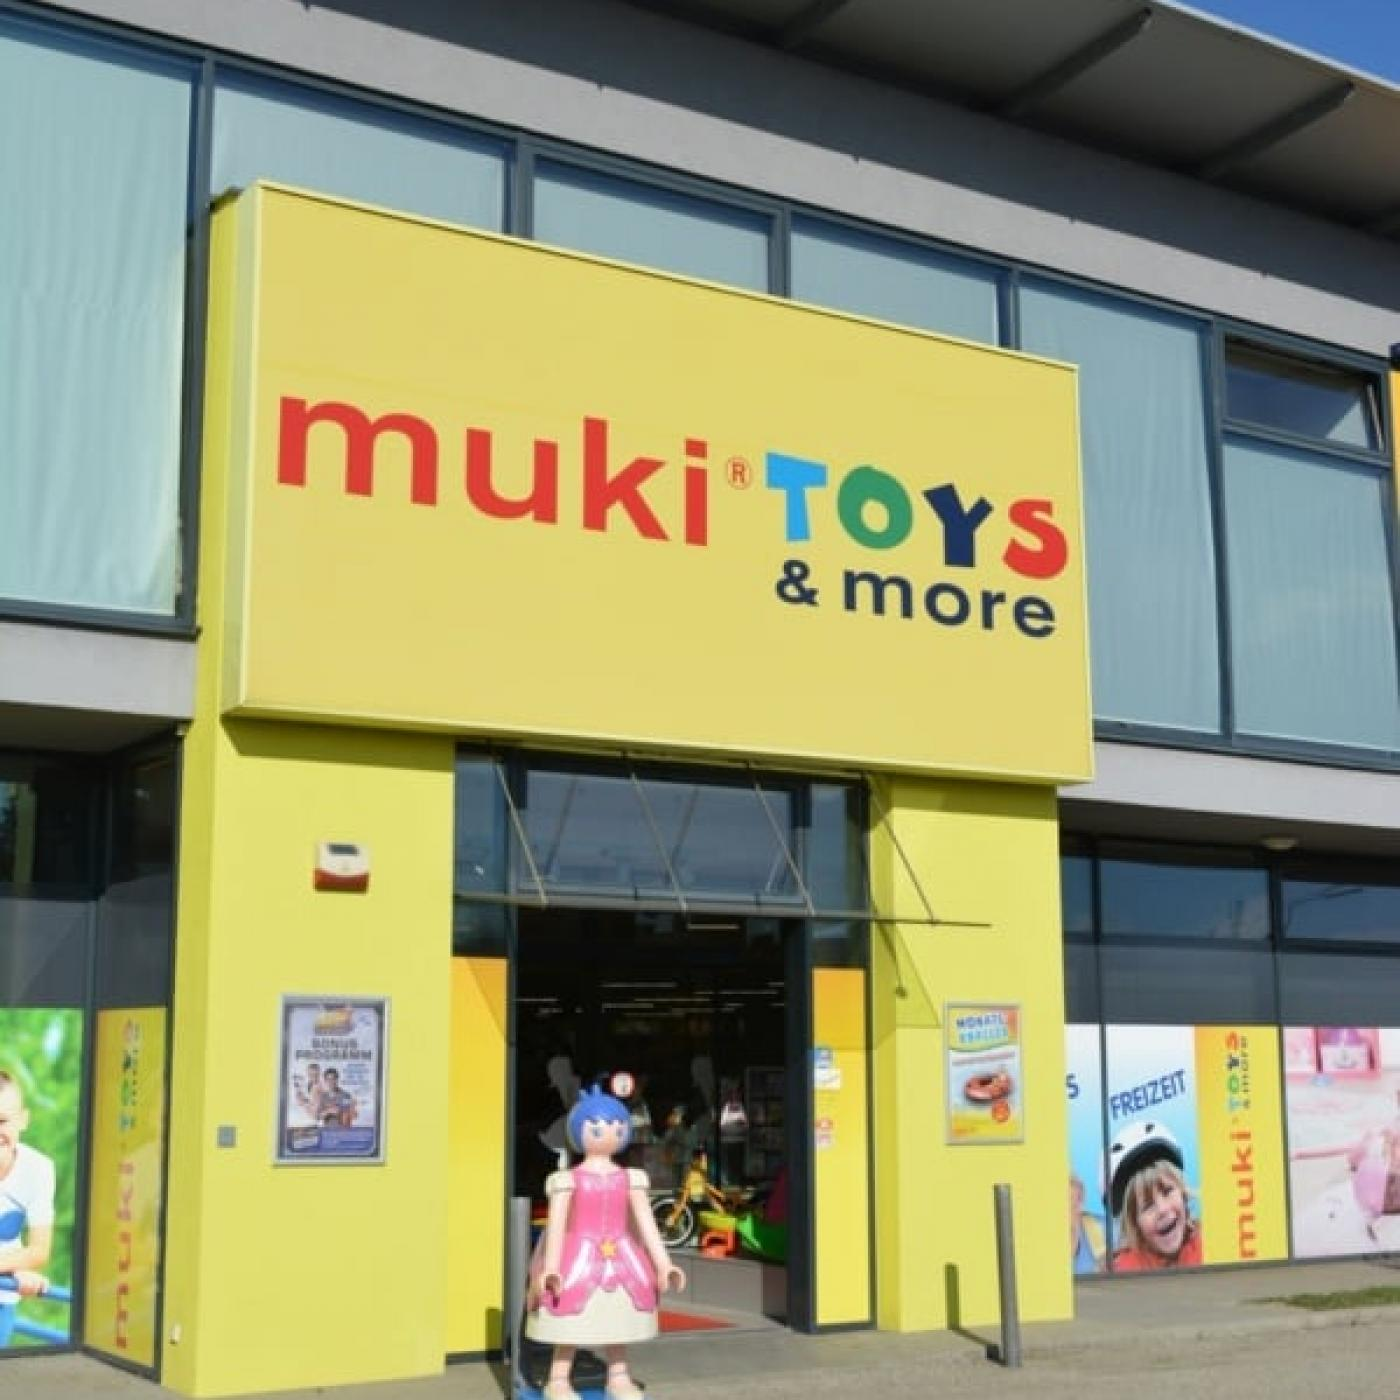 muki TOYS and more Filiale.